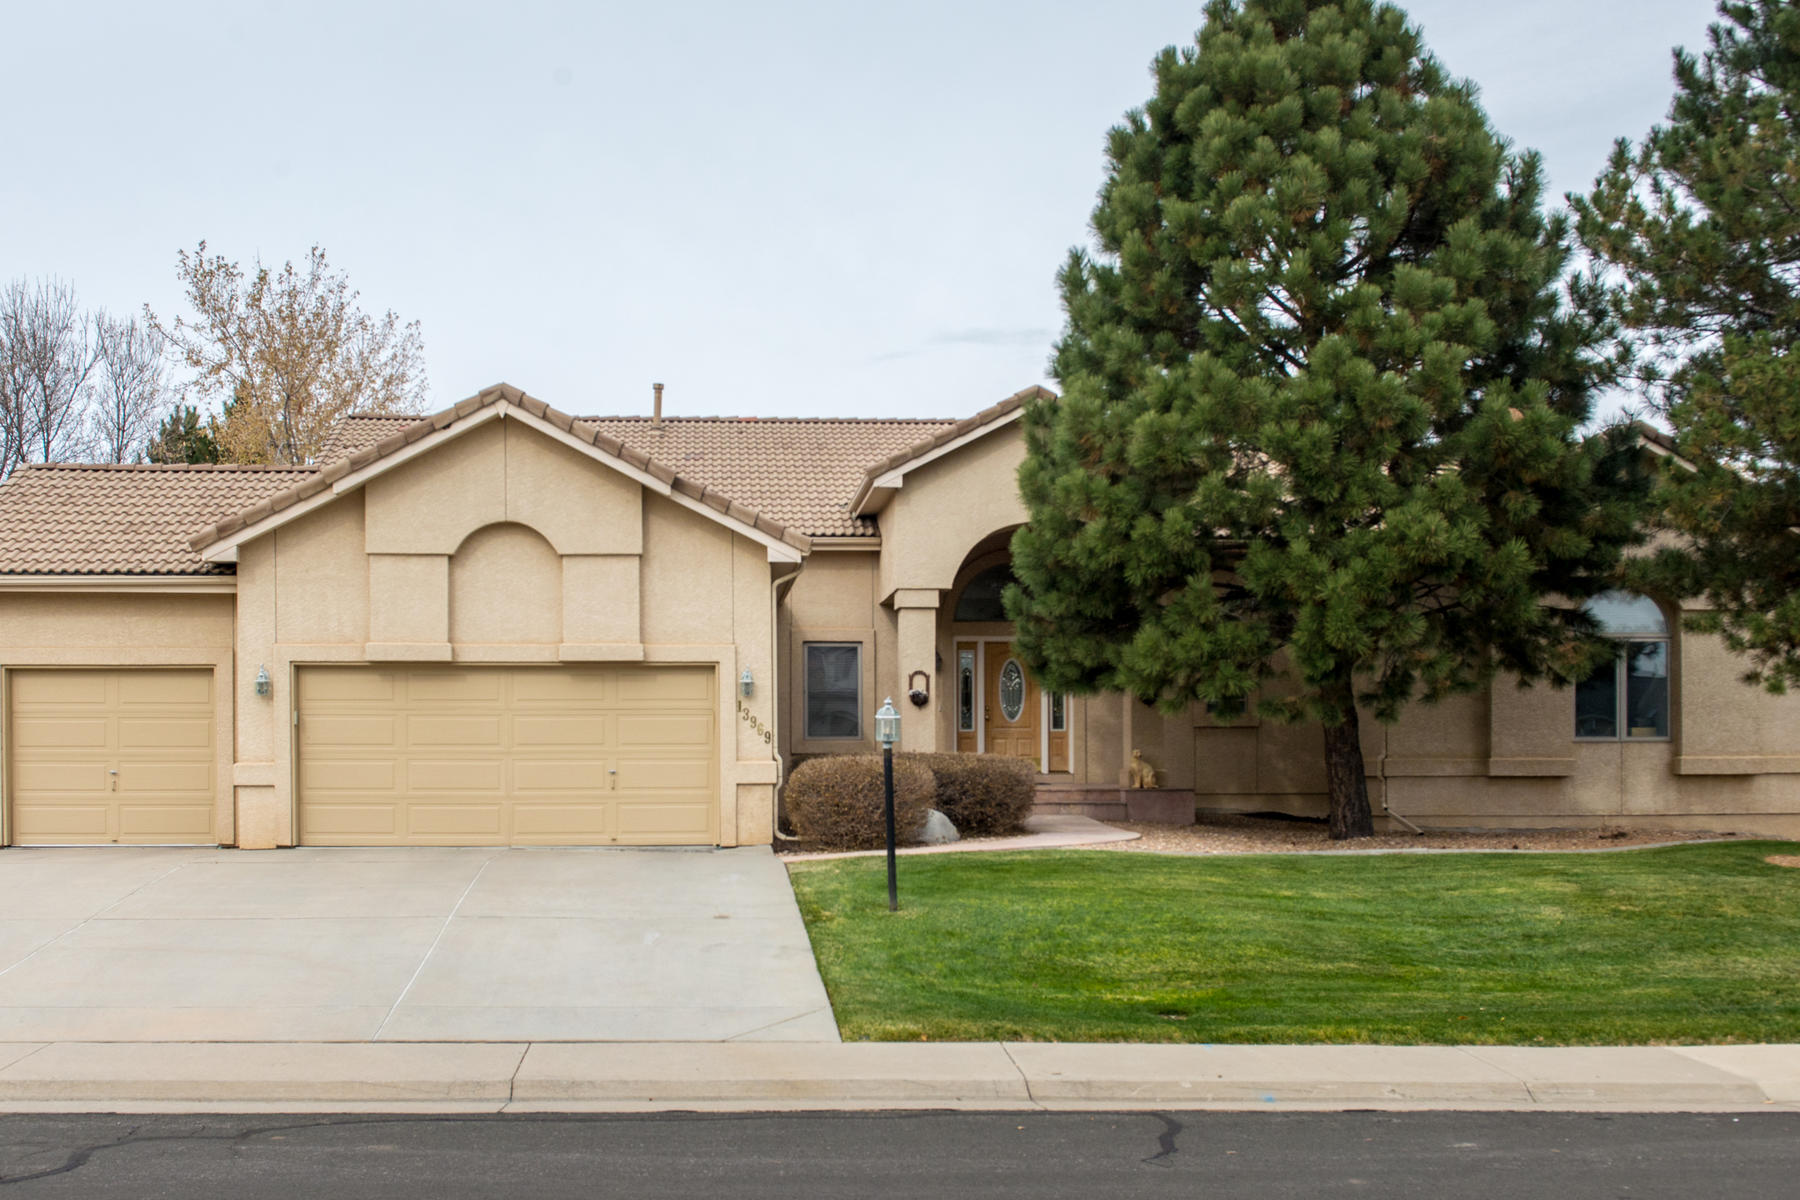 Single Family Home for Active at 13969 E Maplewood Pl 13969 E Maplewood Pl Centennial, Colorado 80111 United States